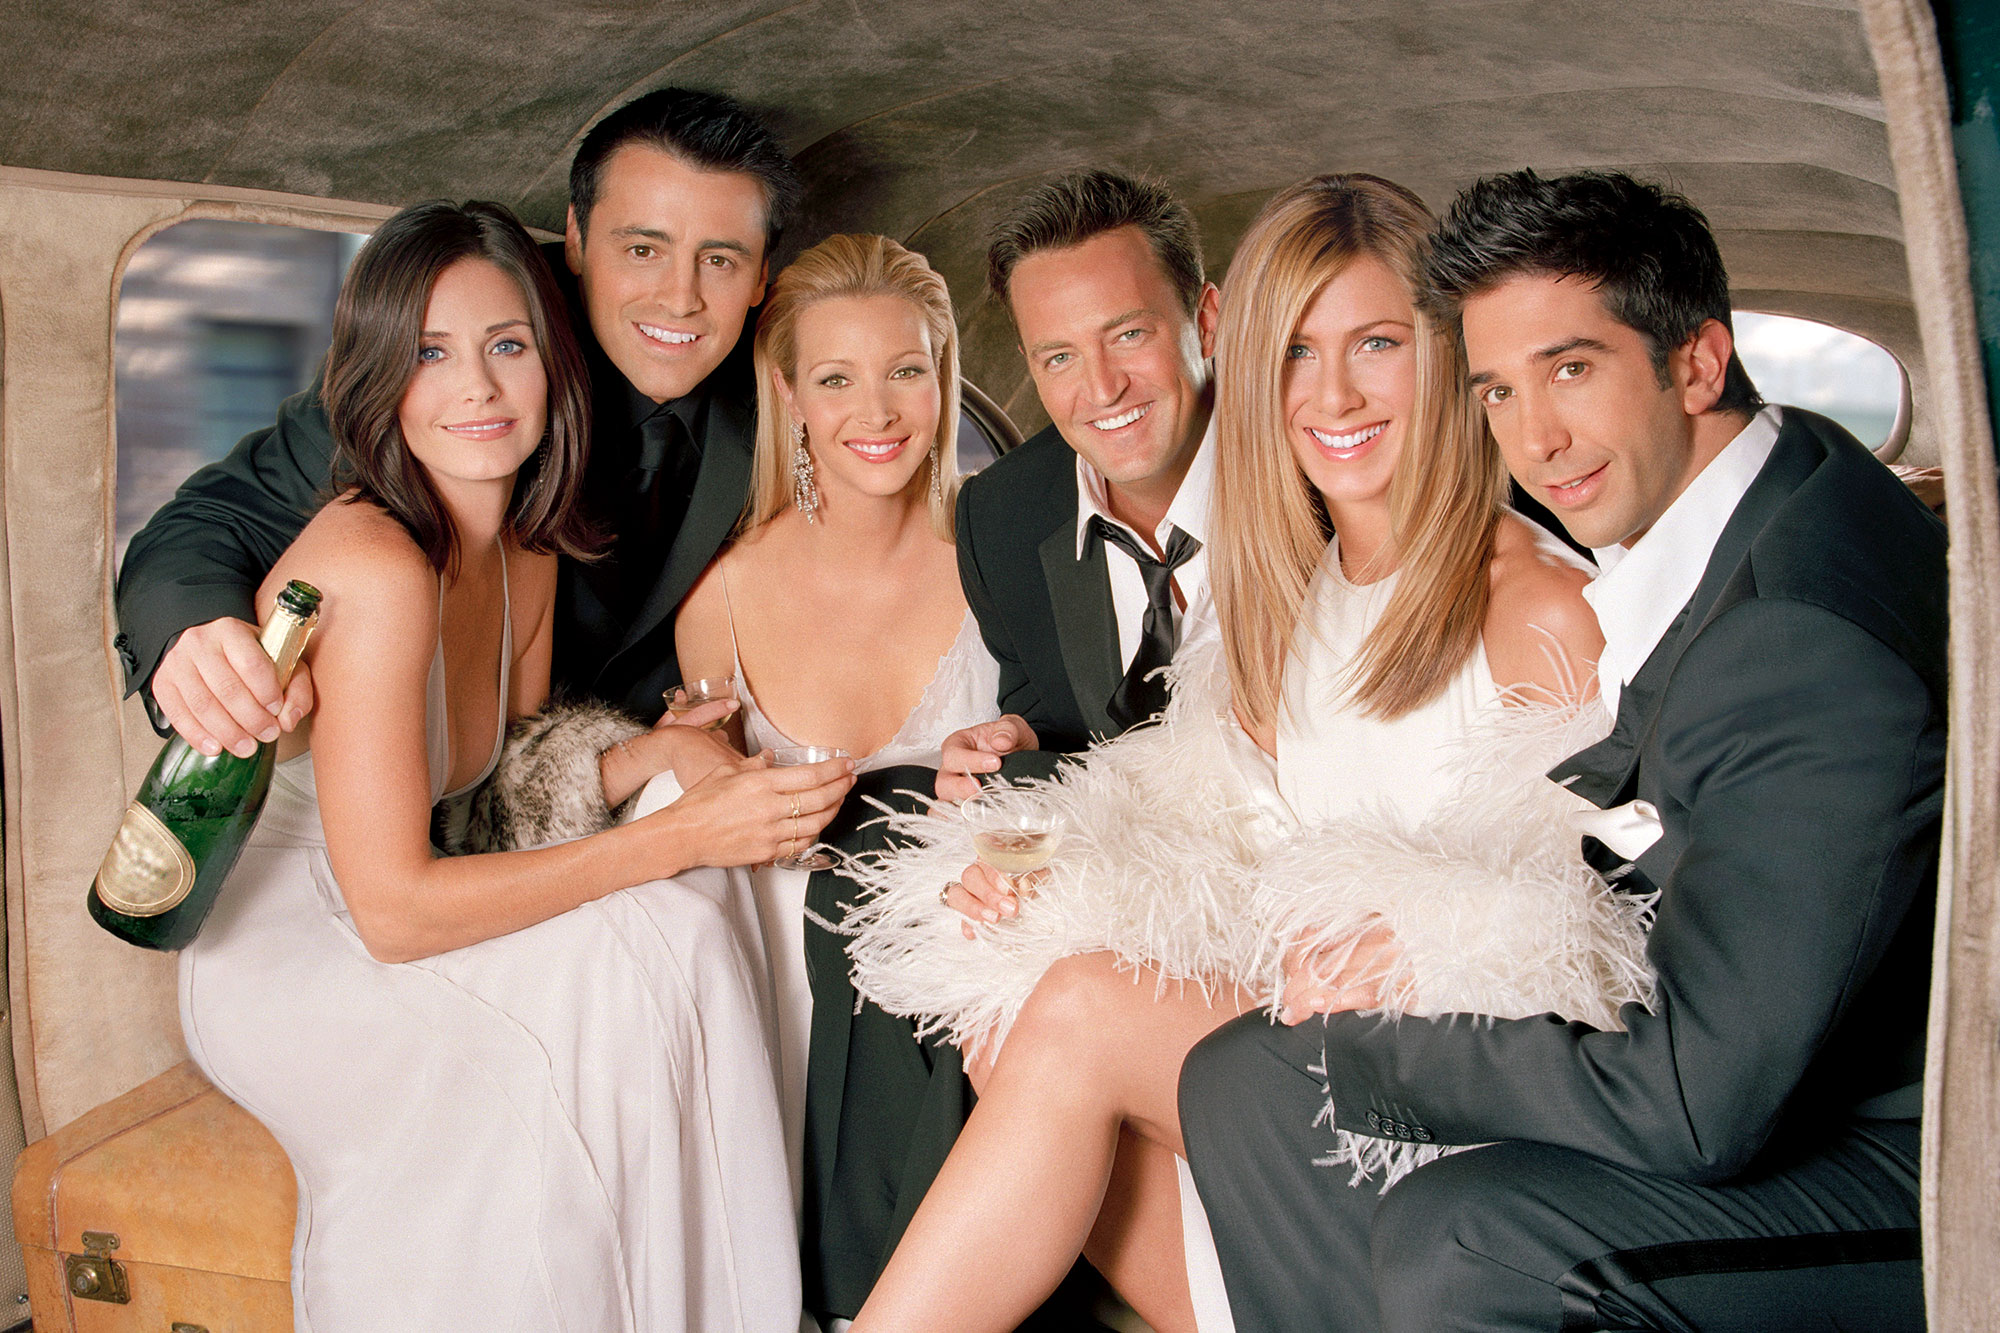 F.R.I.E.N.D.S Is Back With A Reunion Movie After 17 Years- Find Out The Release Date